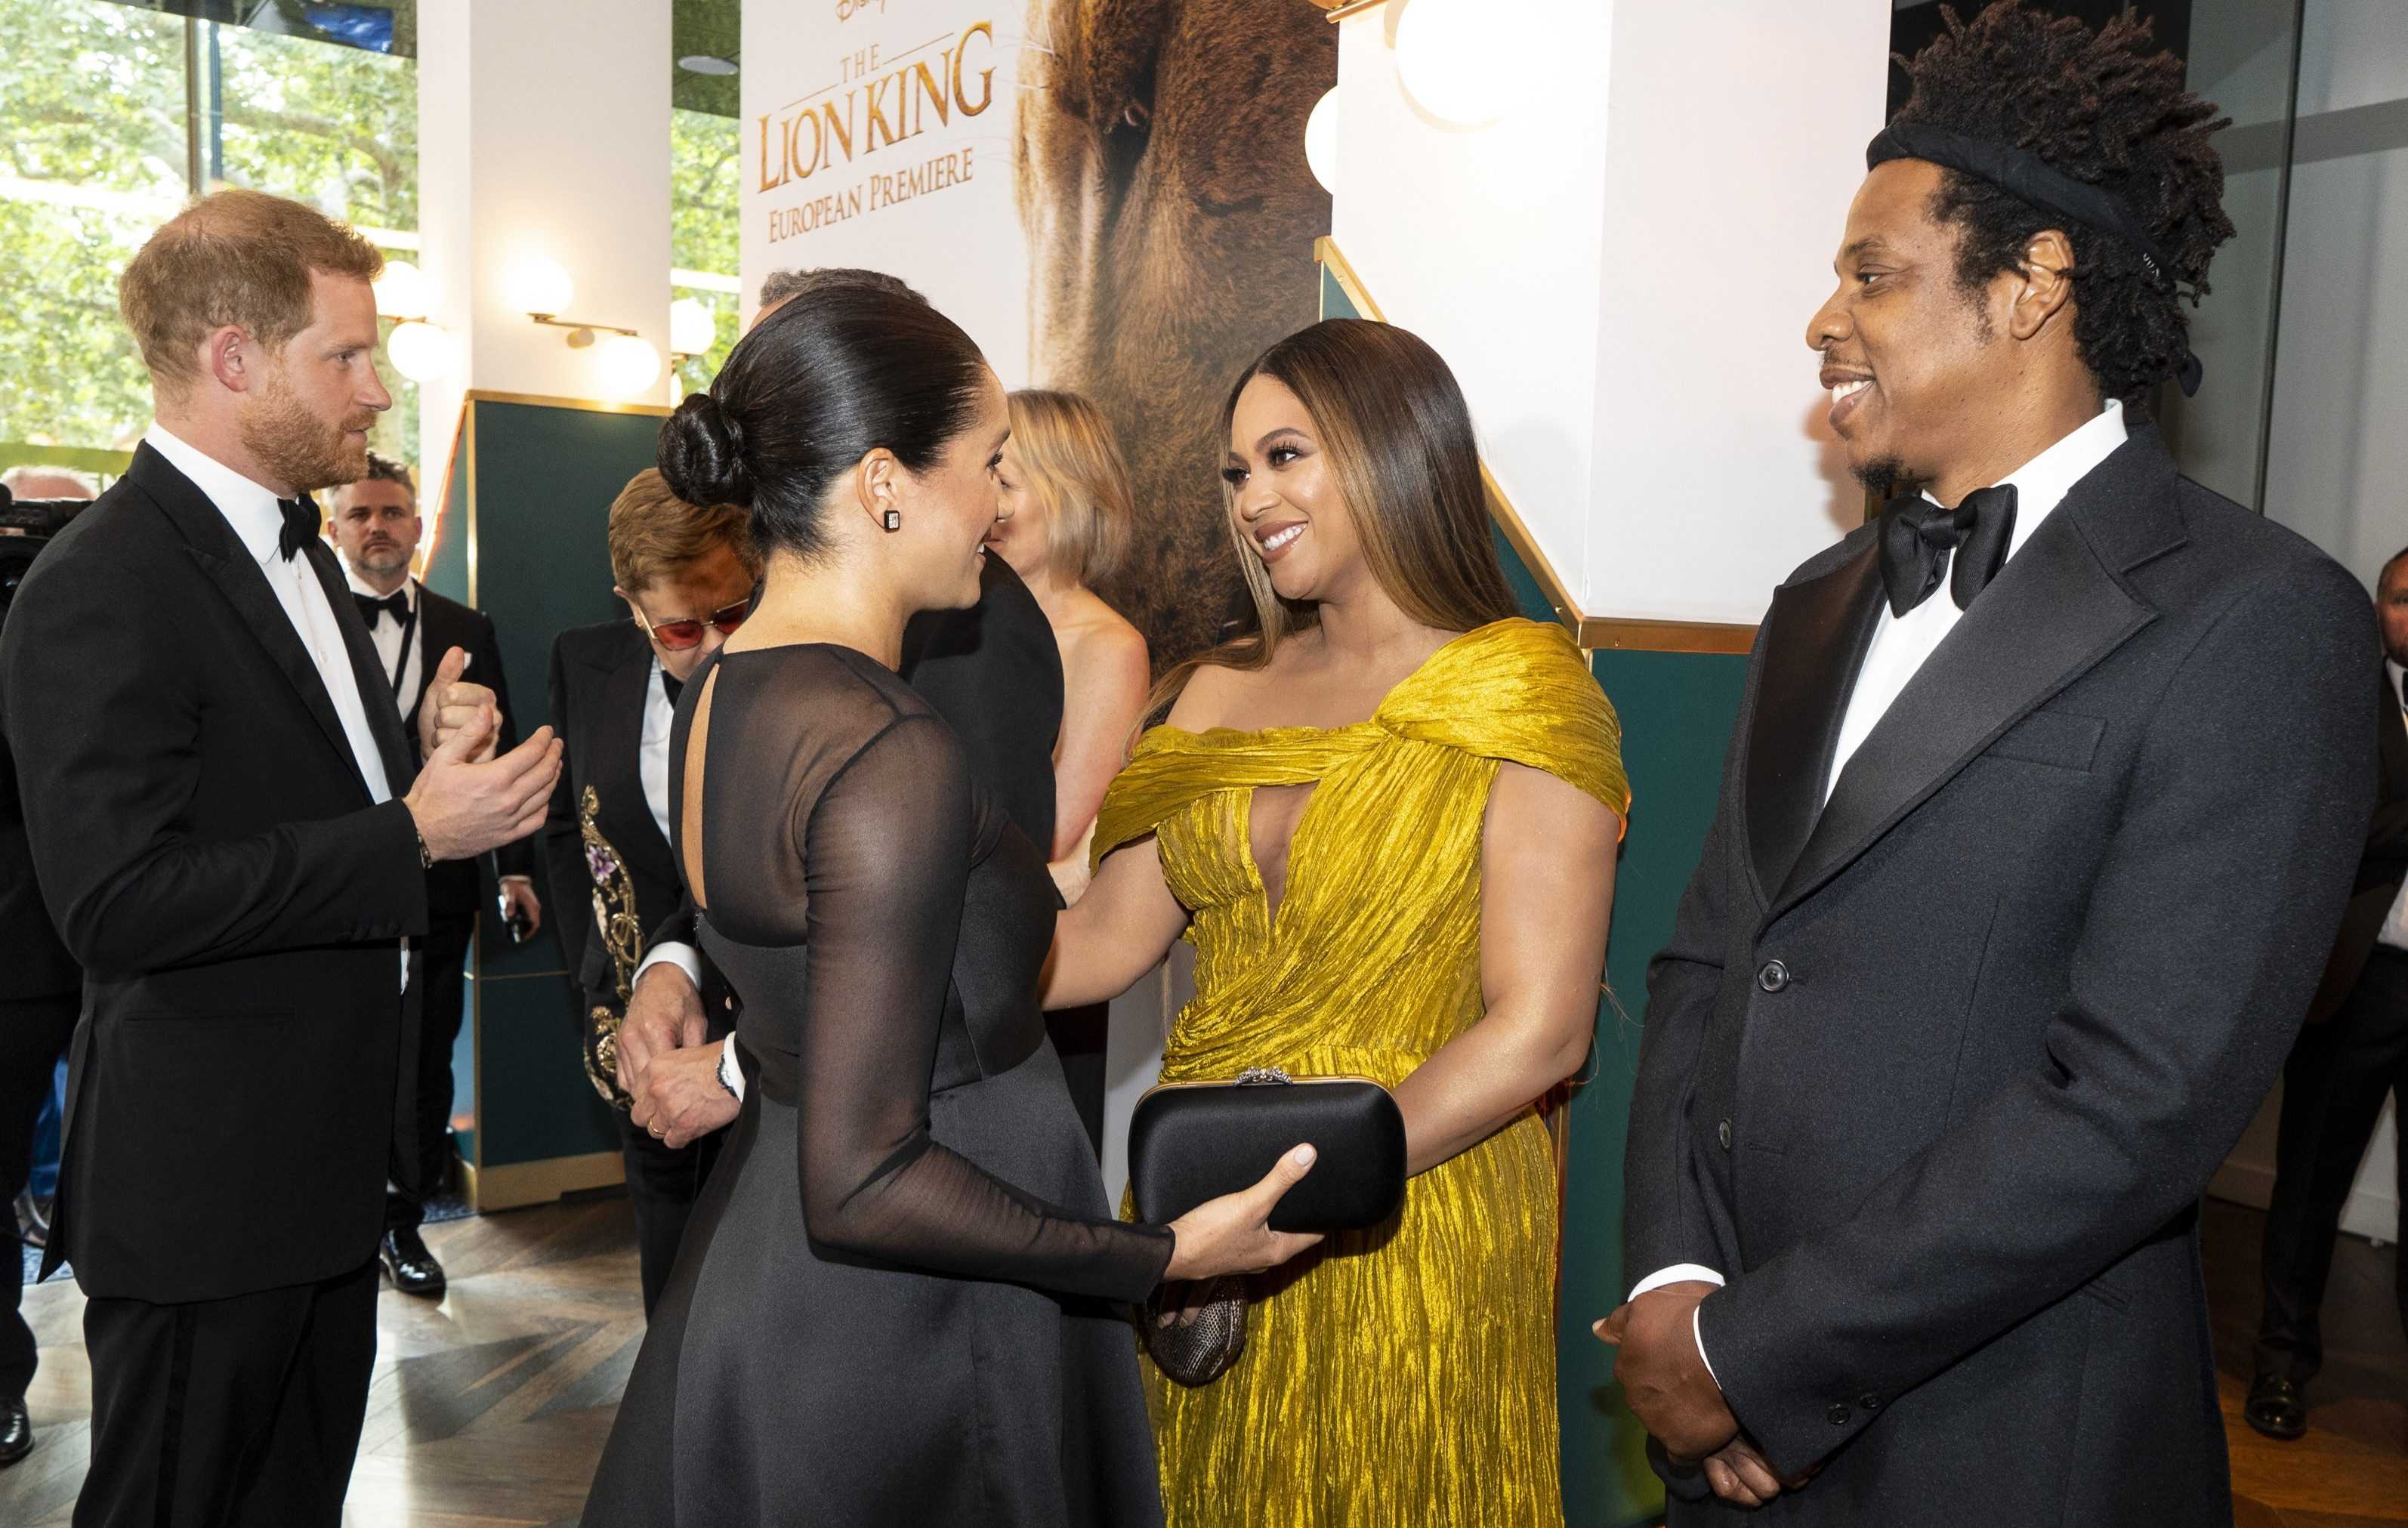 Meghan Markle smiles as Prince Harry awkwardly embarrasses her for ANOTHER voice over Disney work at the premiere of Lion King – The Sun